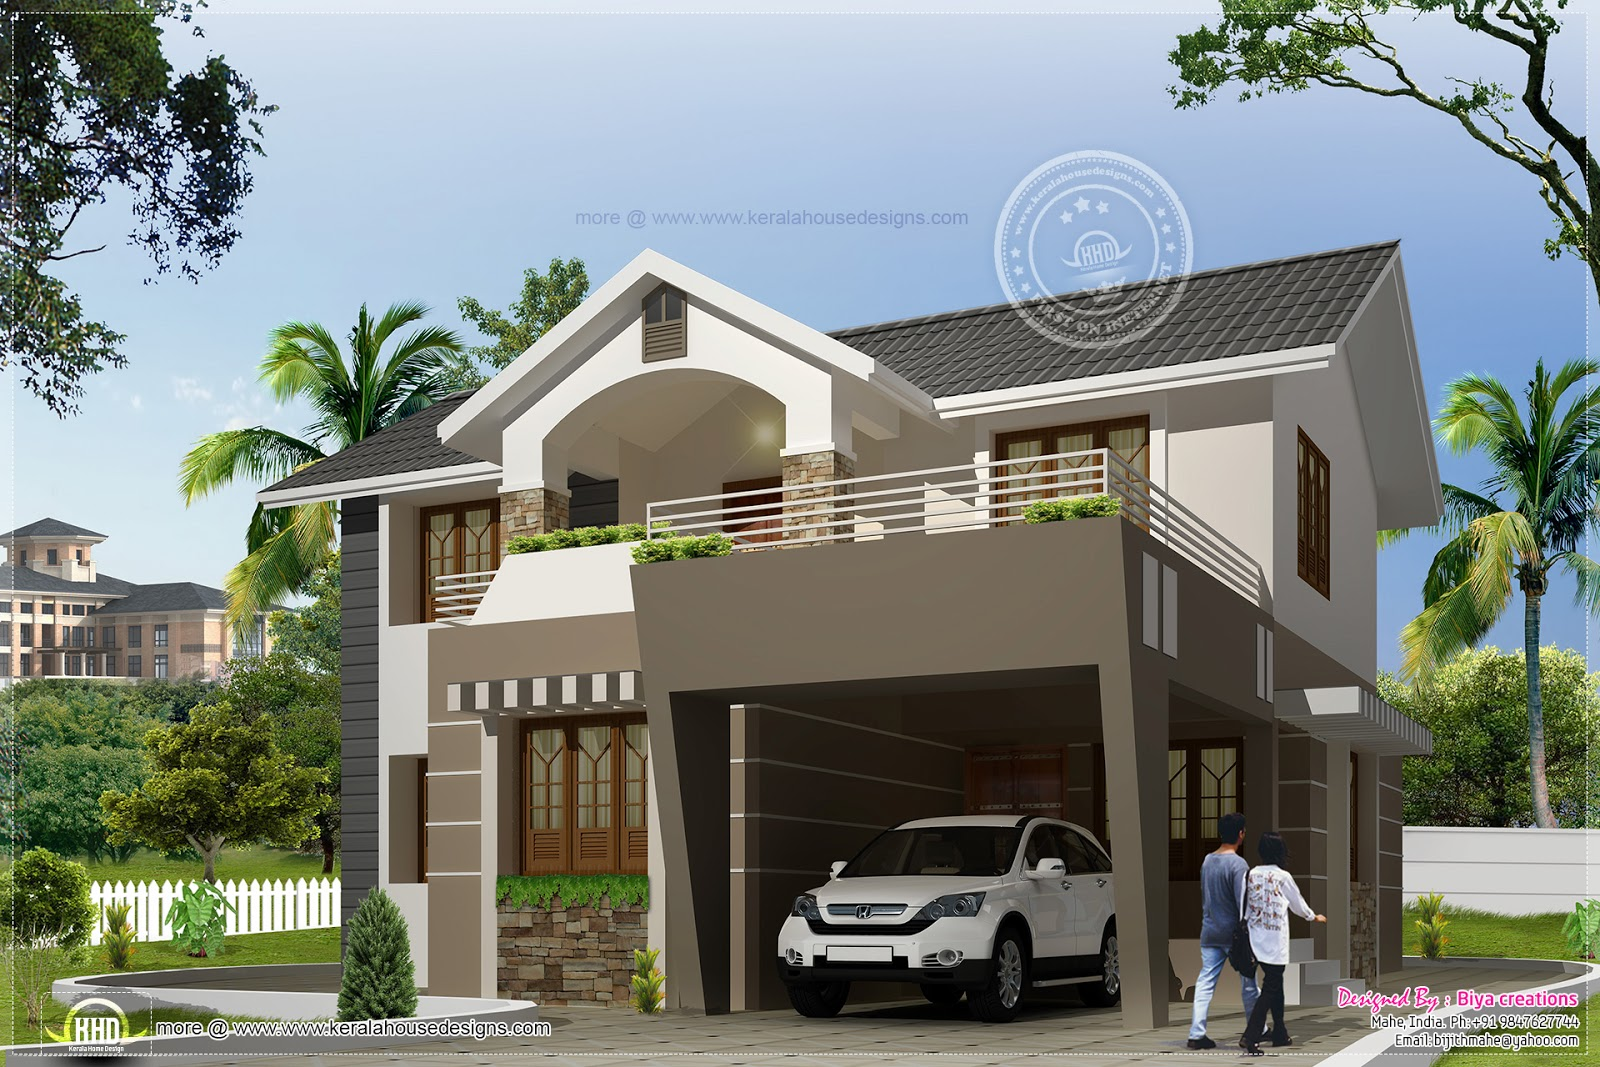 Low budget house design in indian